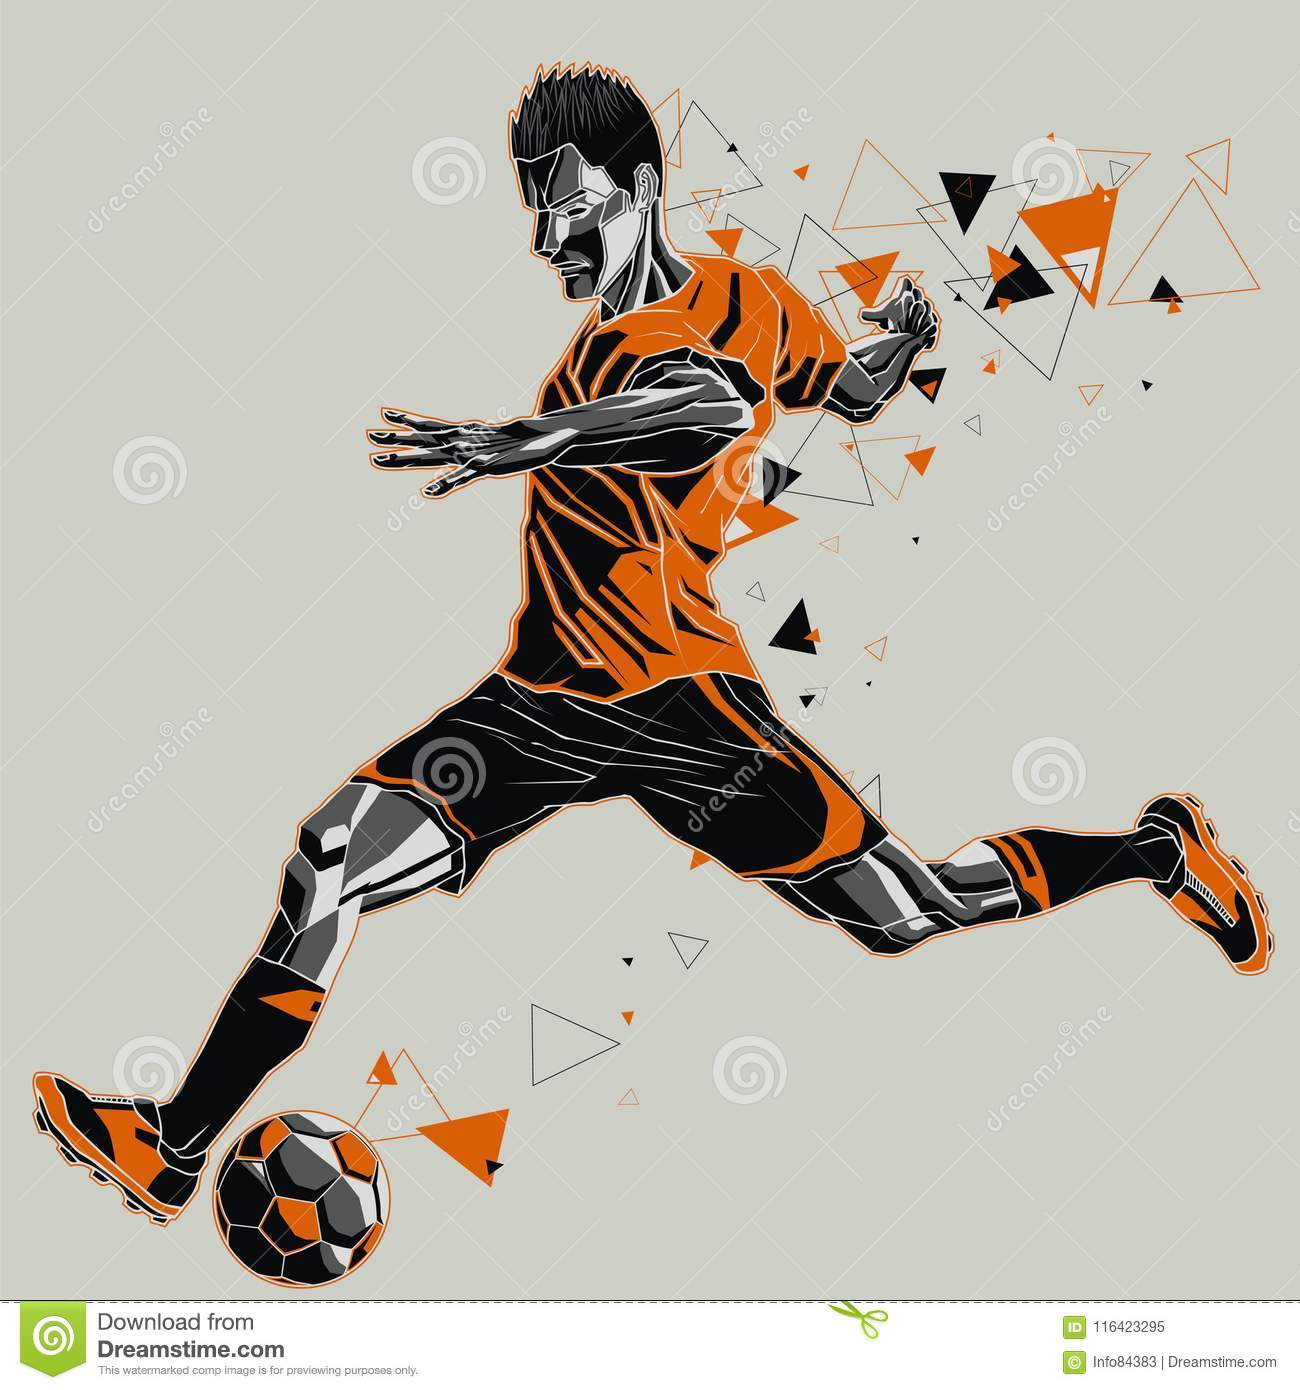 53ebba20573b Vector illustration of a soccer player in action